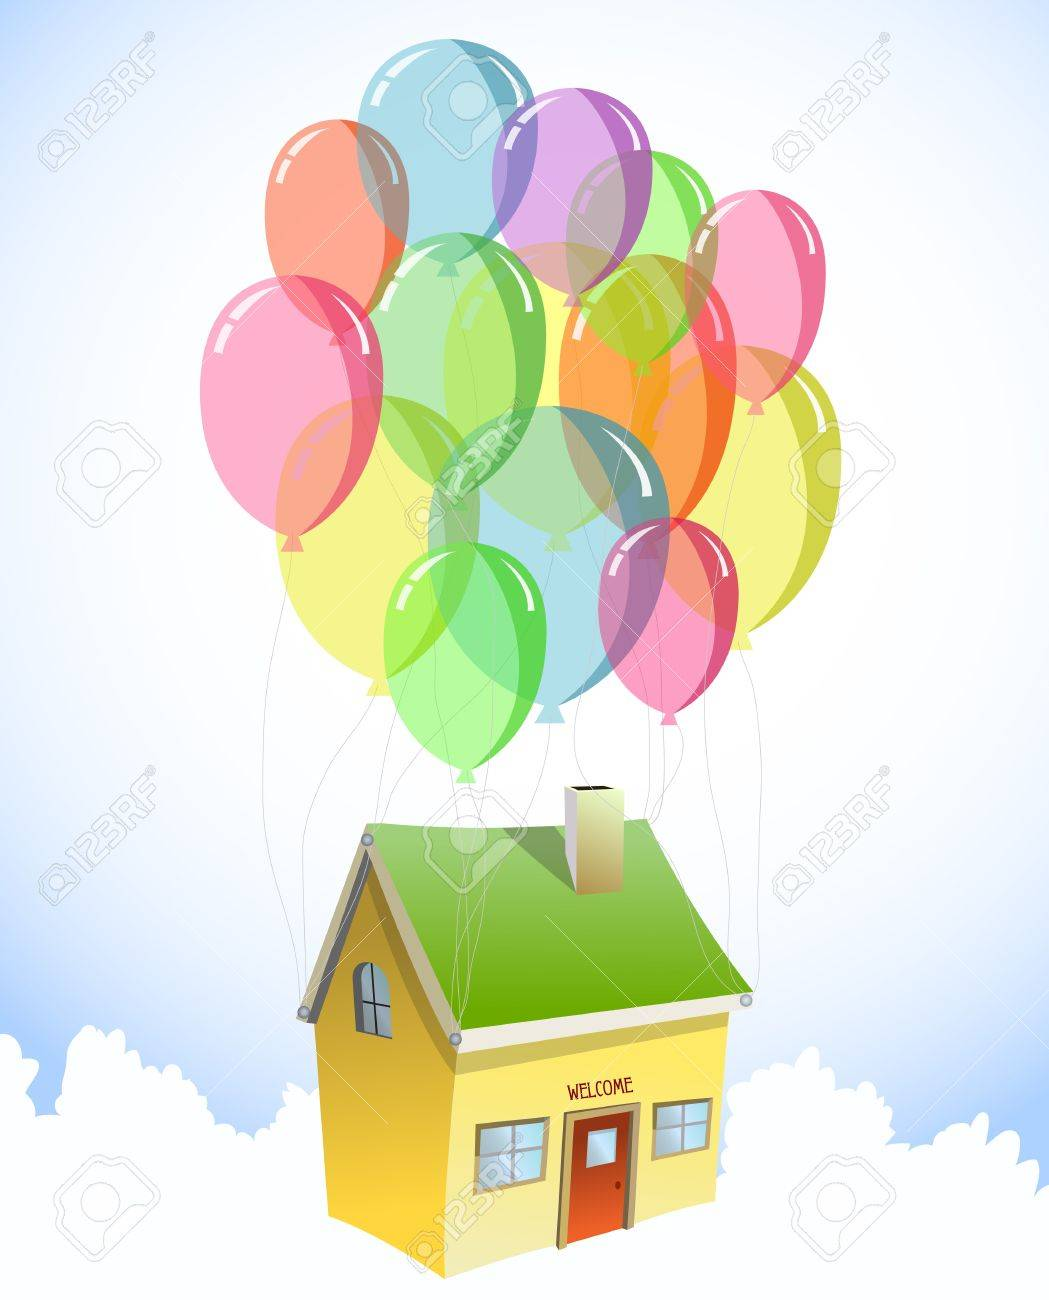 Up House Balloons House With A Lots Of Colorful Balloons Vector Royalty Free